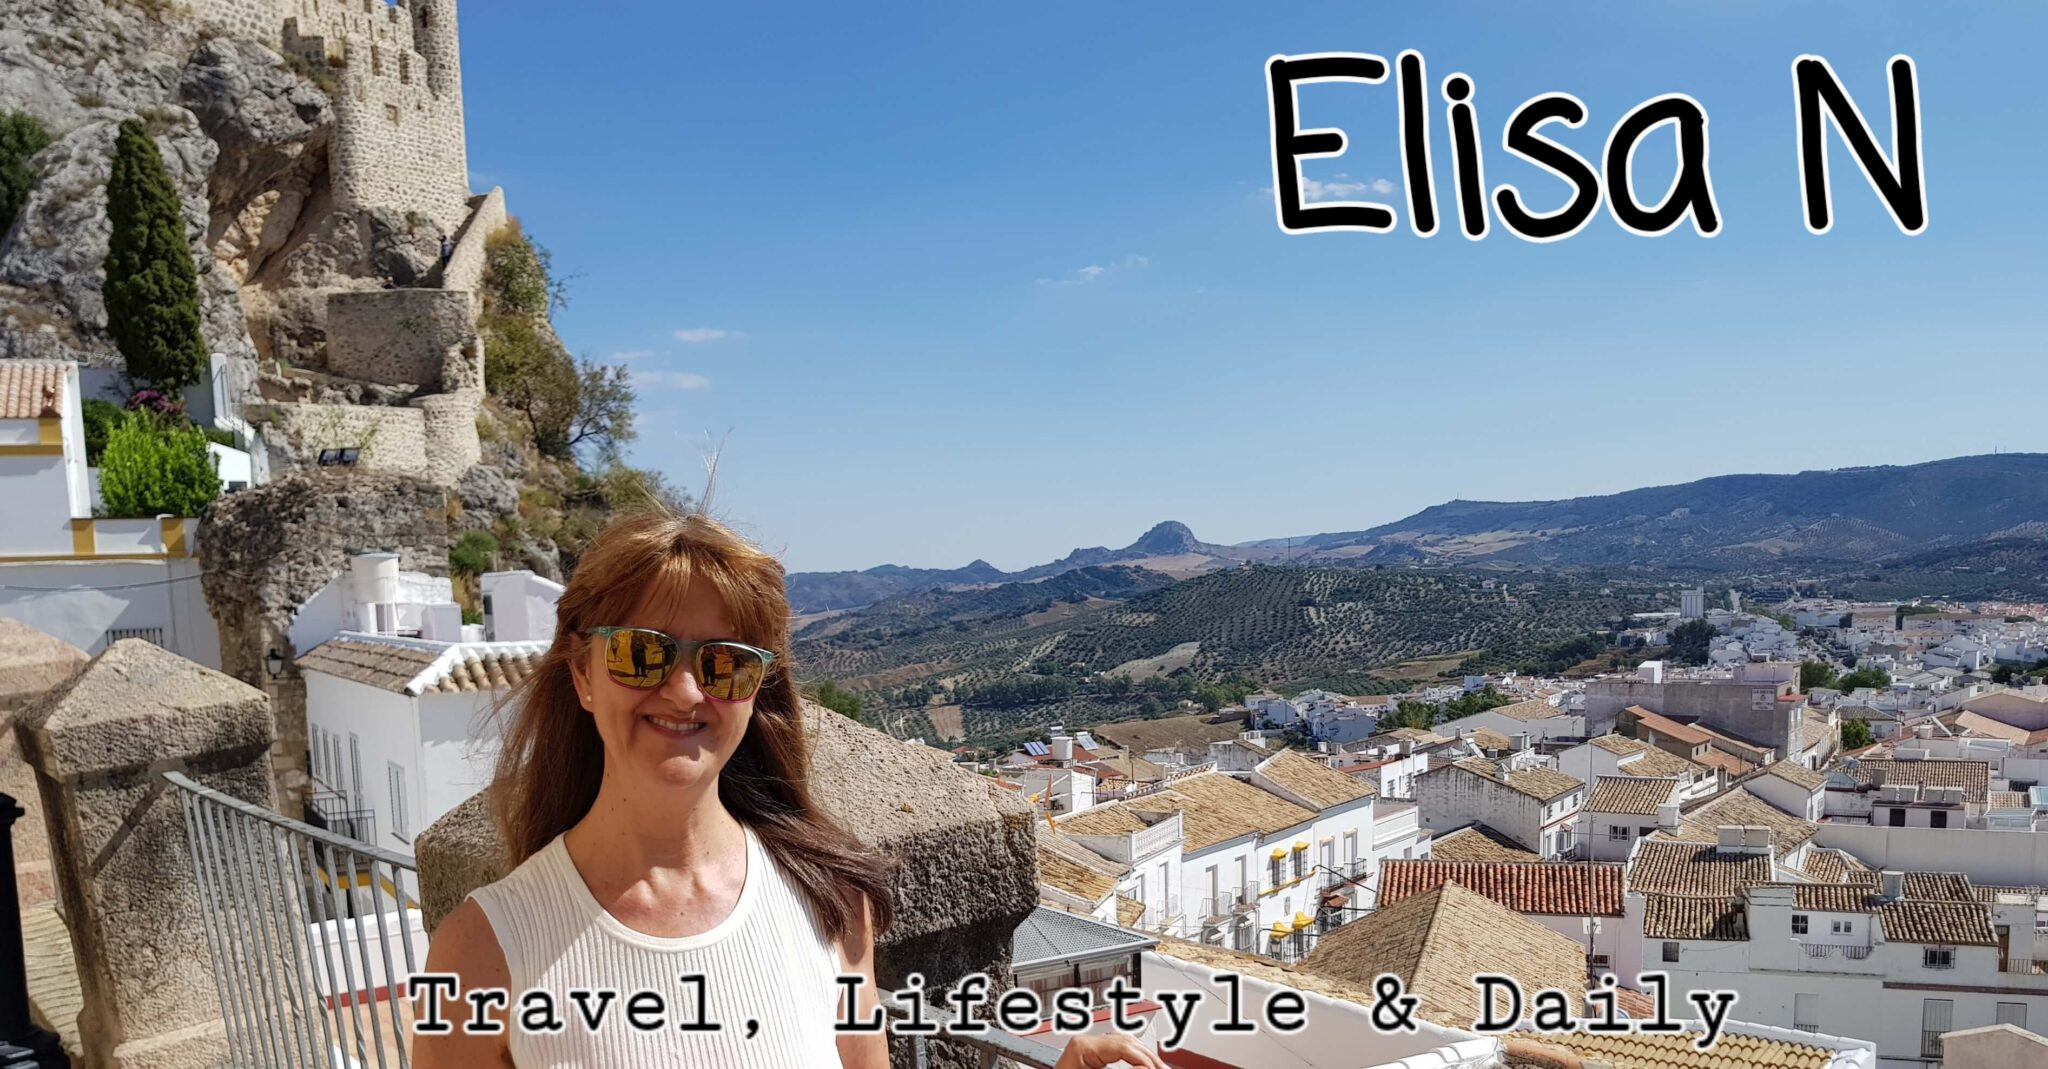 Elisa N, Travel, LifeStyle & Daily